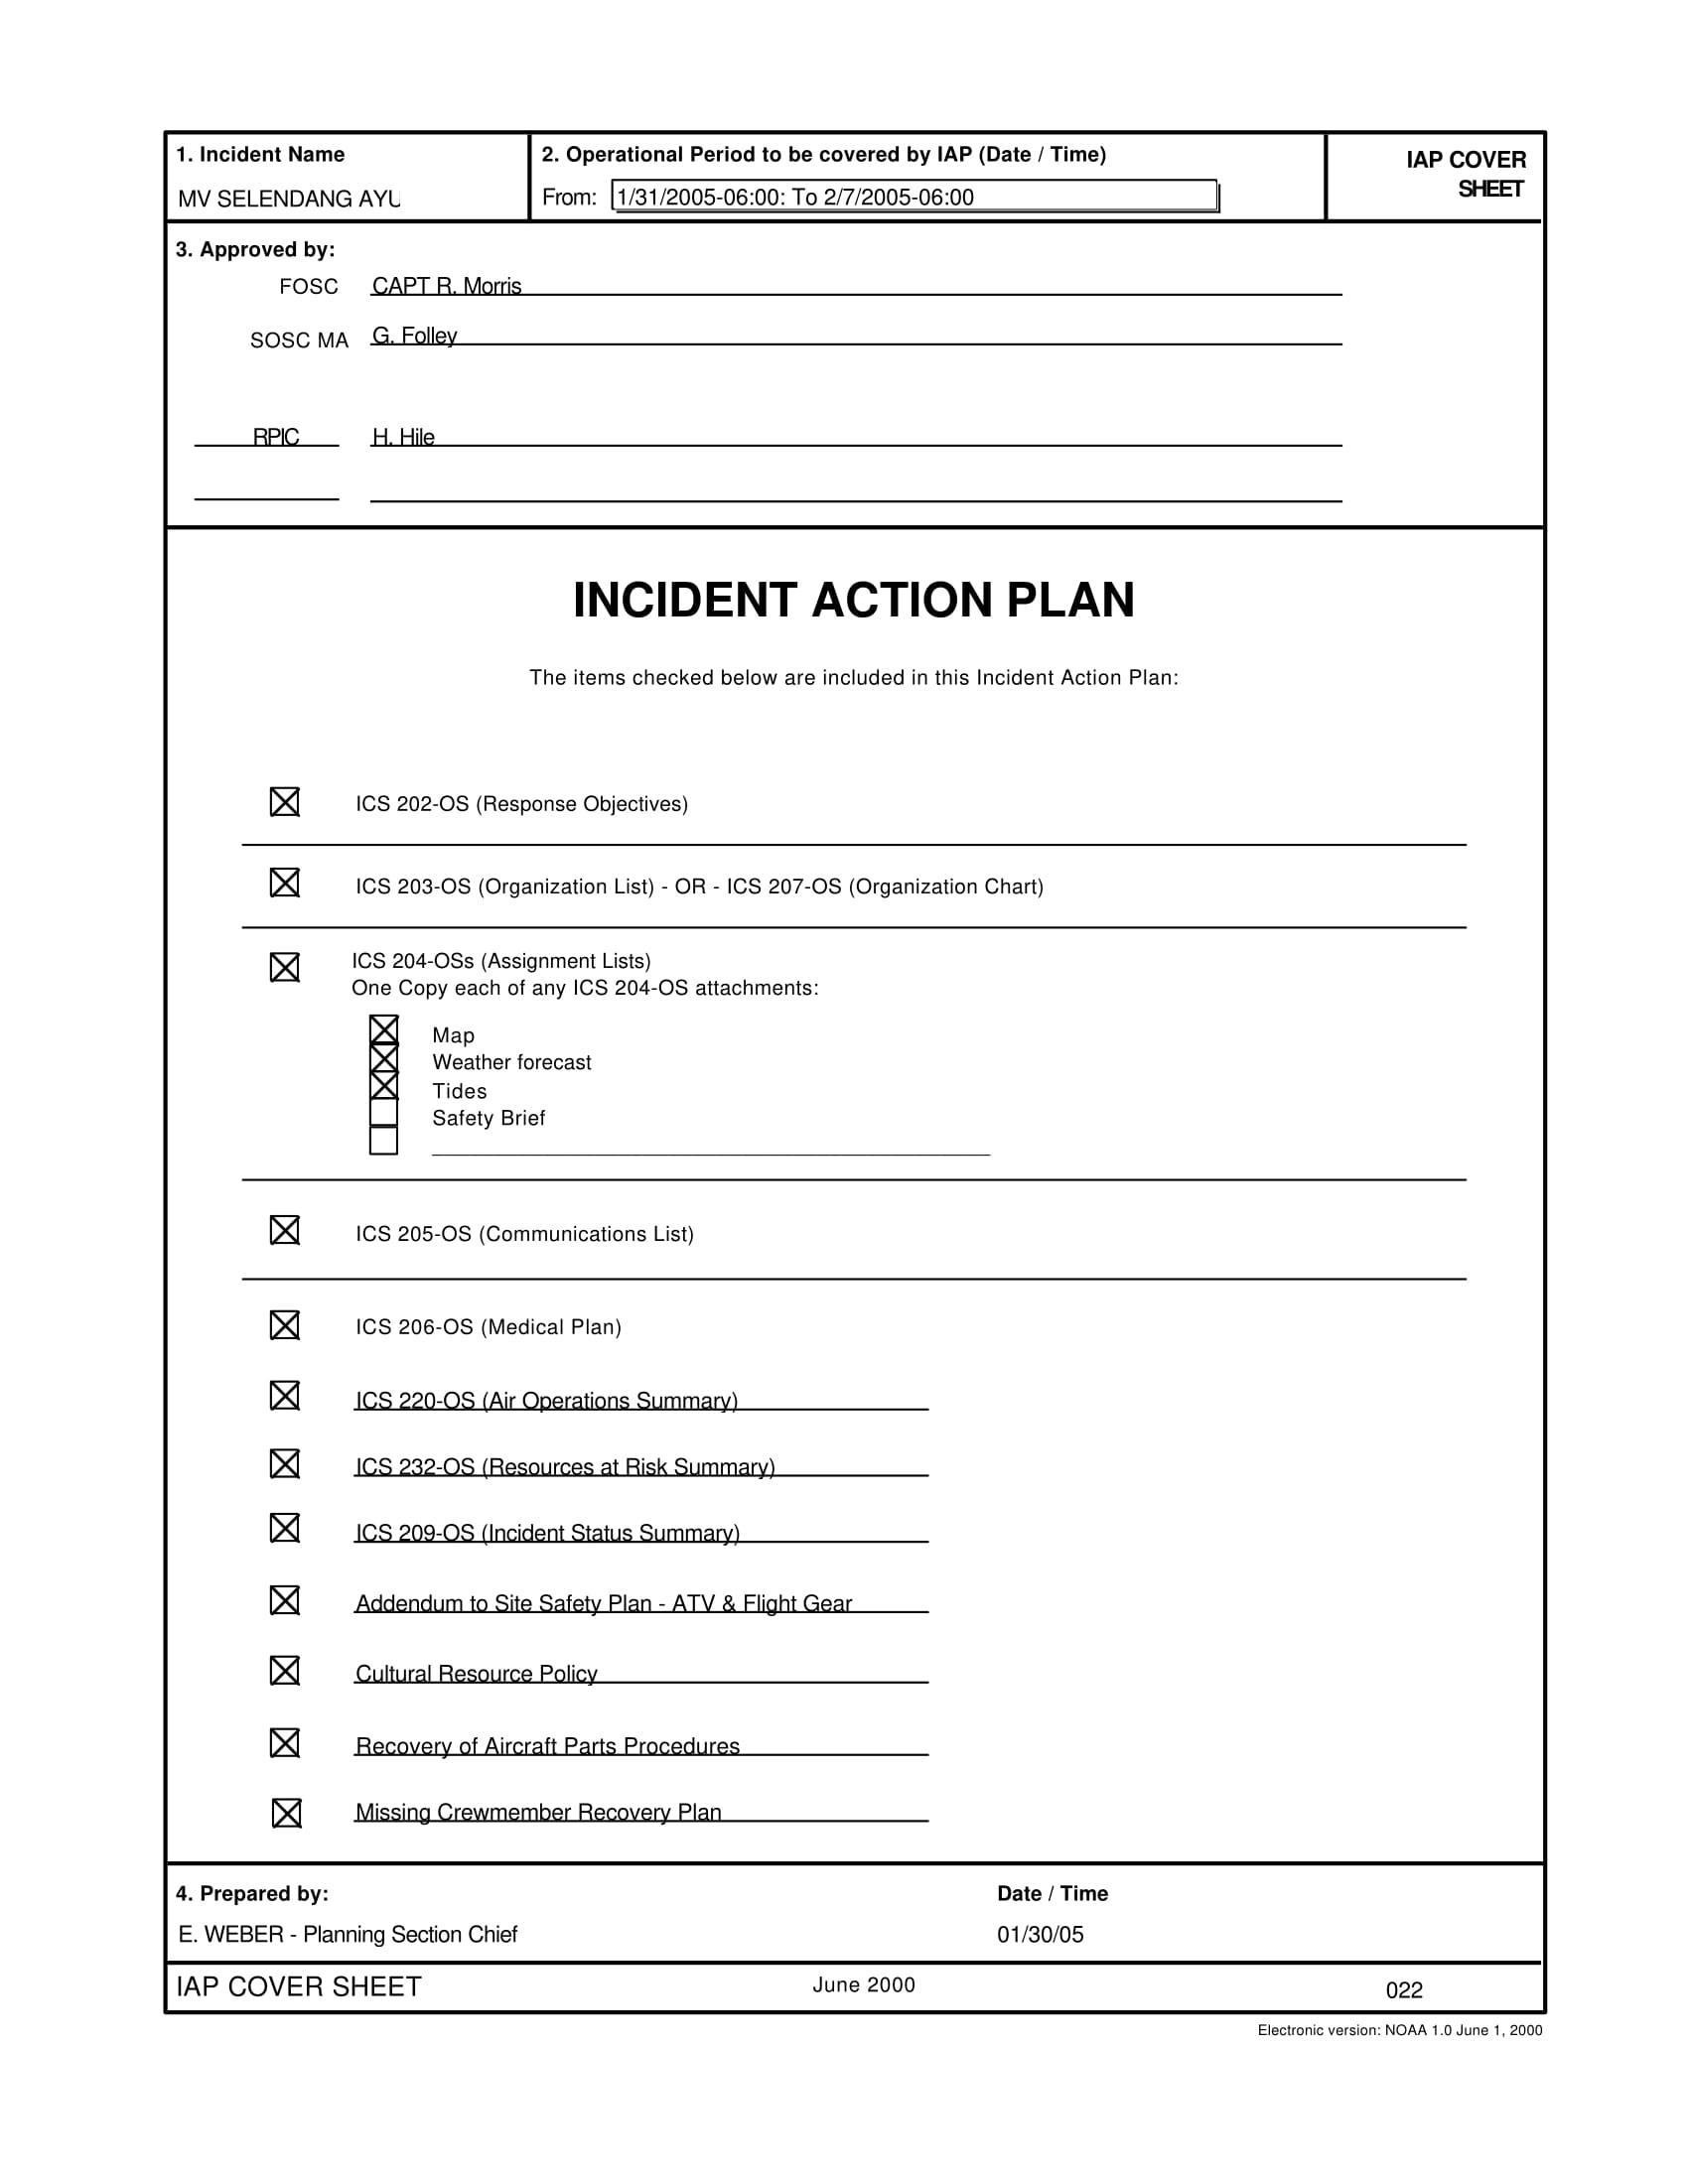 dissemination plan template - 9 incident action plan templates pdf